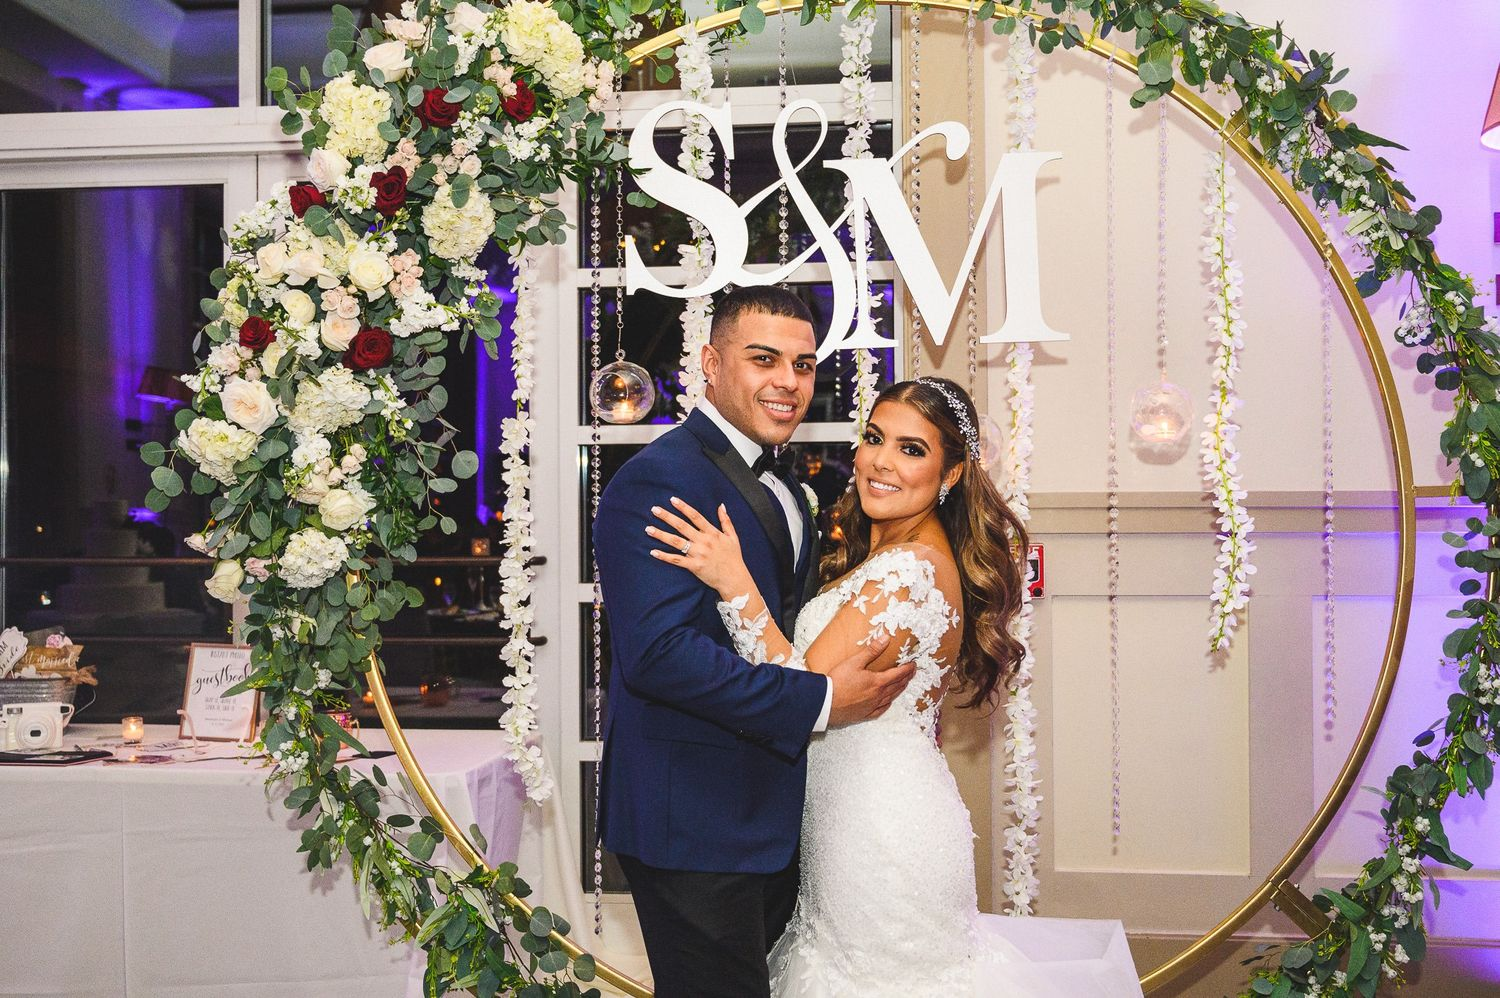 Bride and groom portrait in front flower arbor in reception